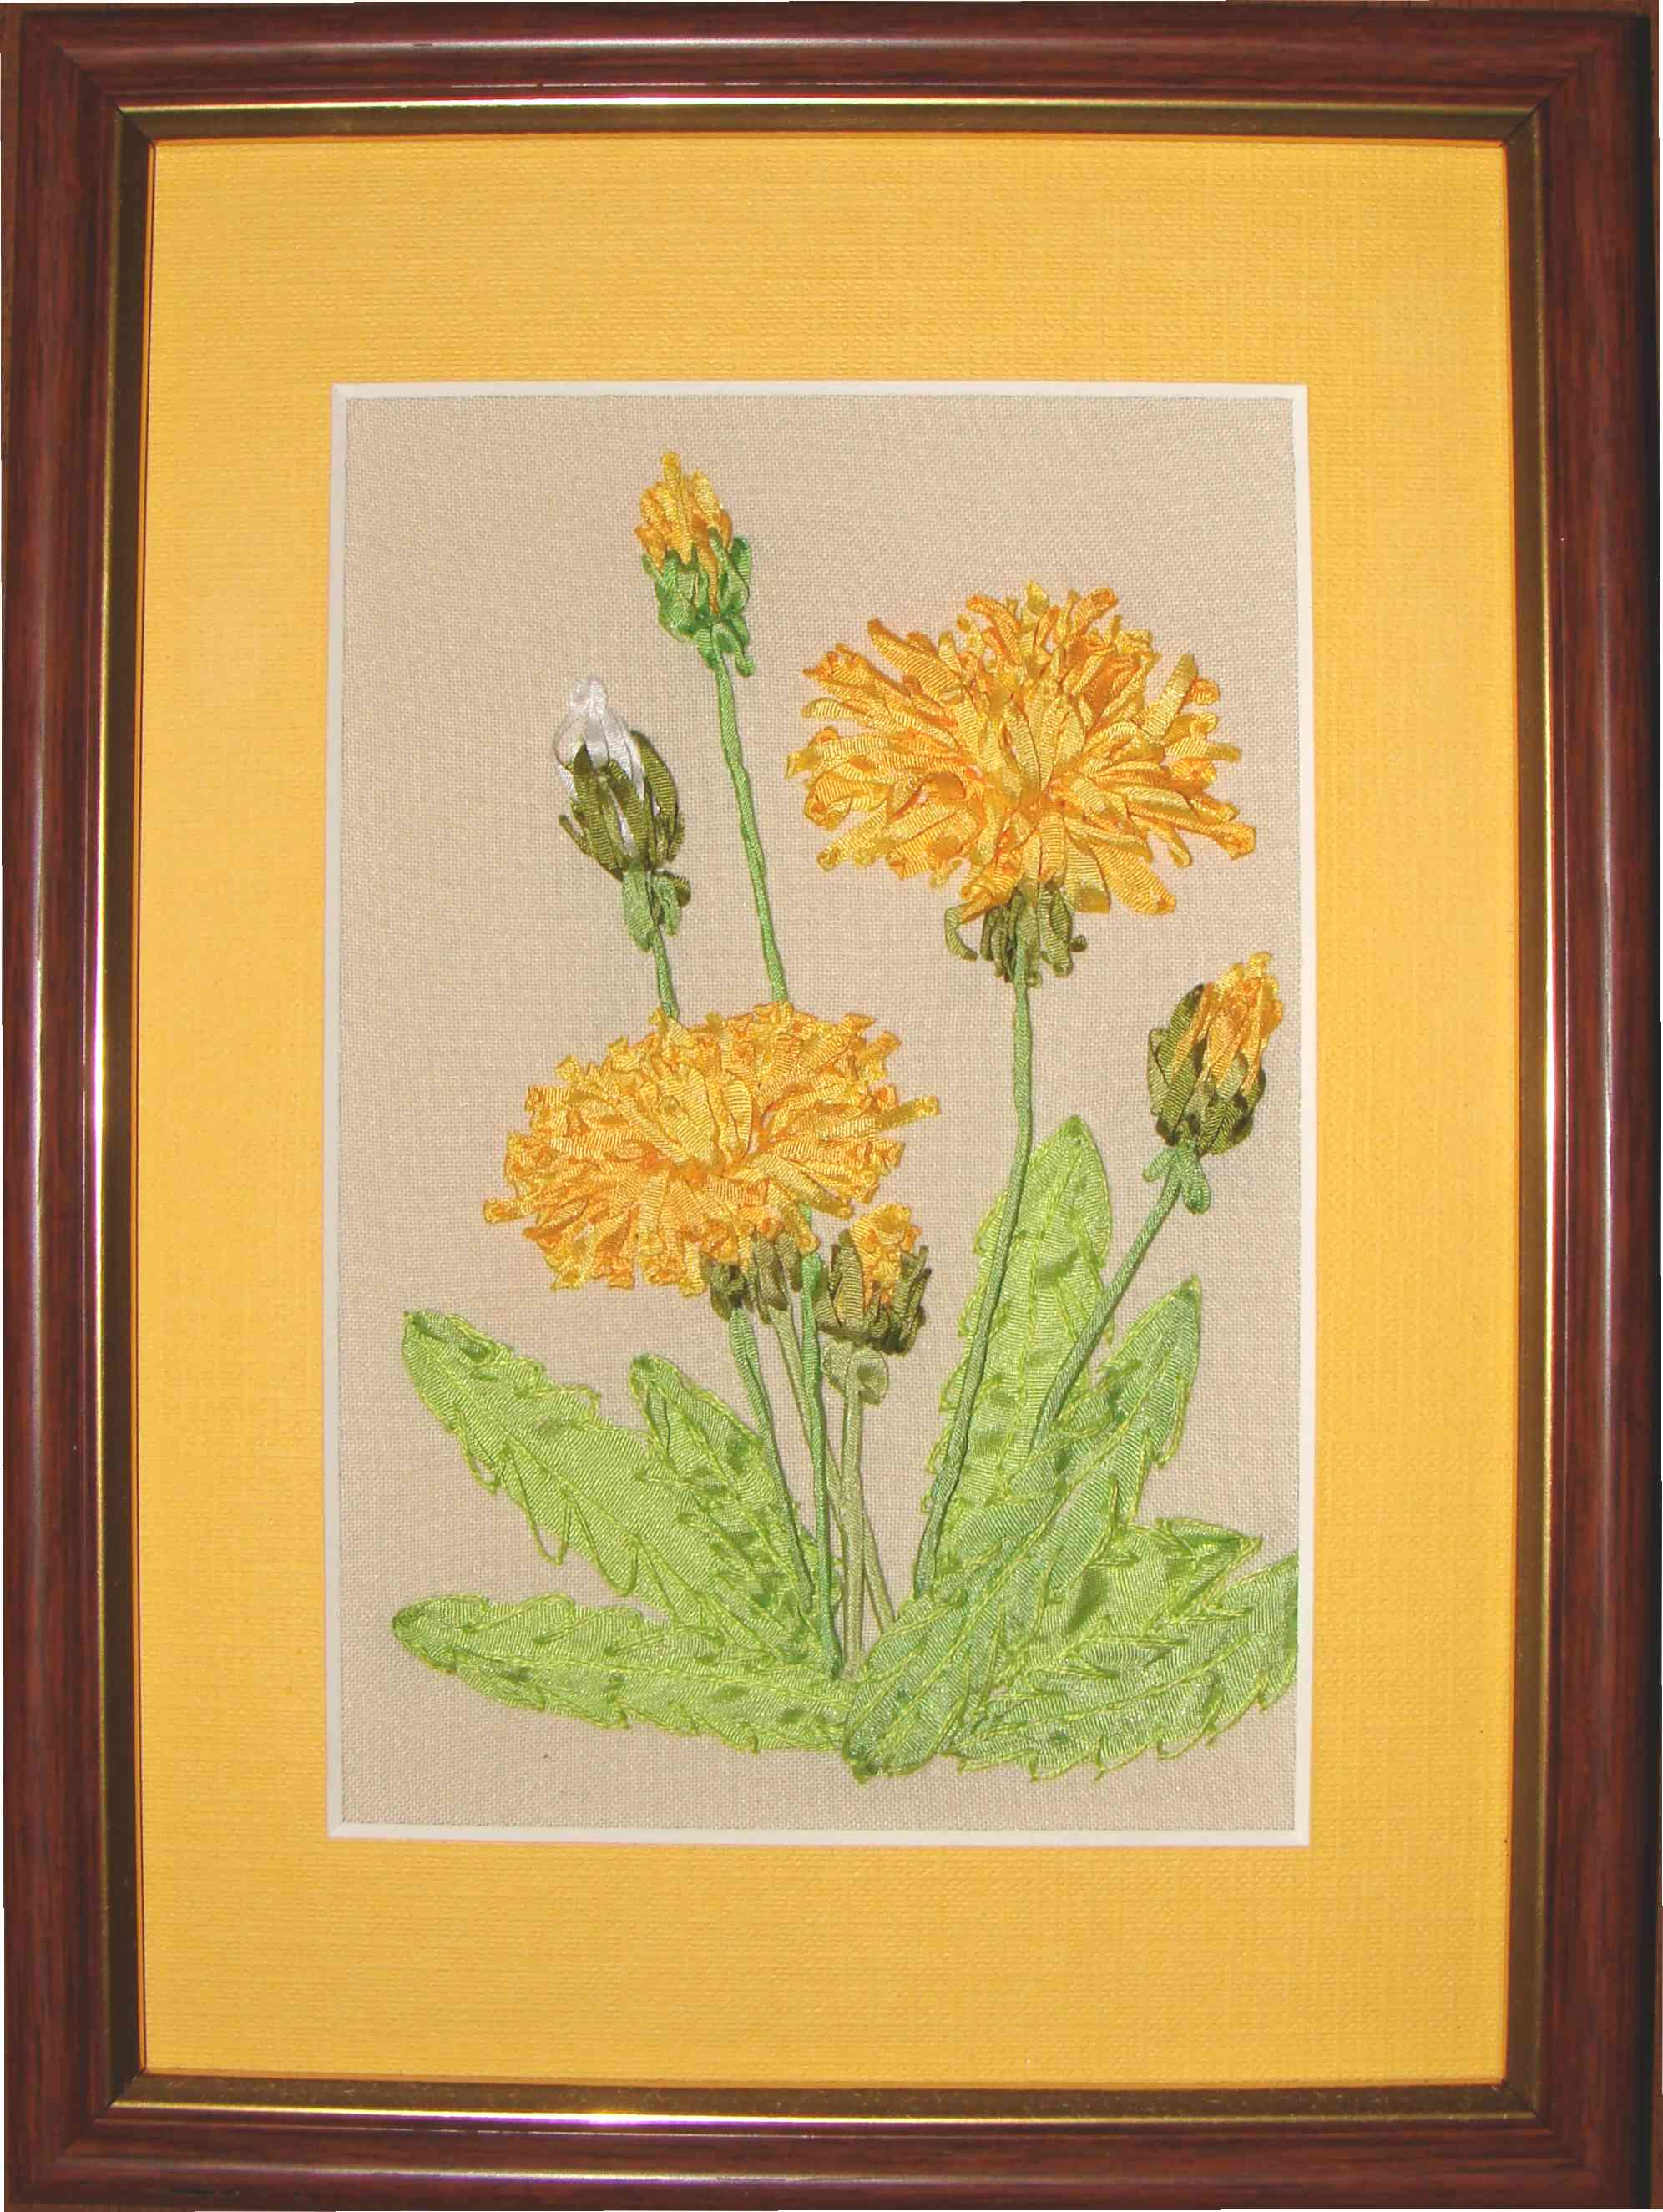 dandelion in silk ribbon embroidery, USA, Lithuania, Germany, Chess, Poland, Spane, ribbon embroidery kits, buy online, kits for intermediate level, Tatiana Popova embroidery designs, SRe, natural silk ribbon, yellow flowers, embroidered flowers